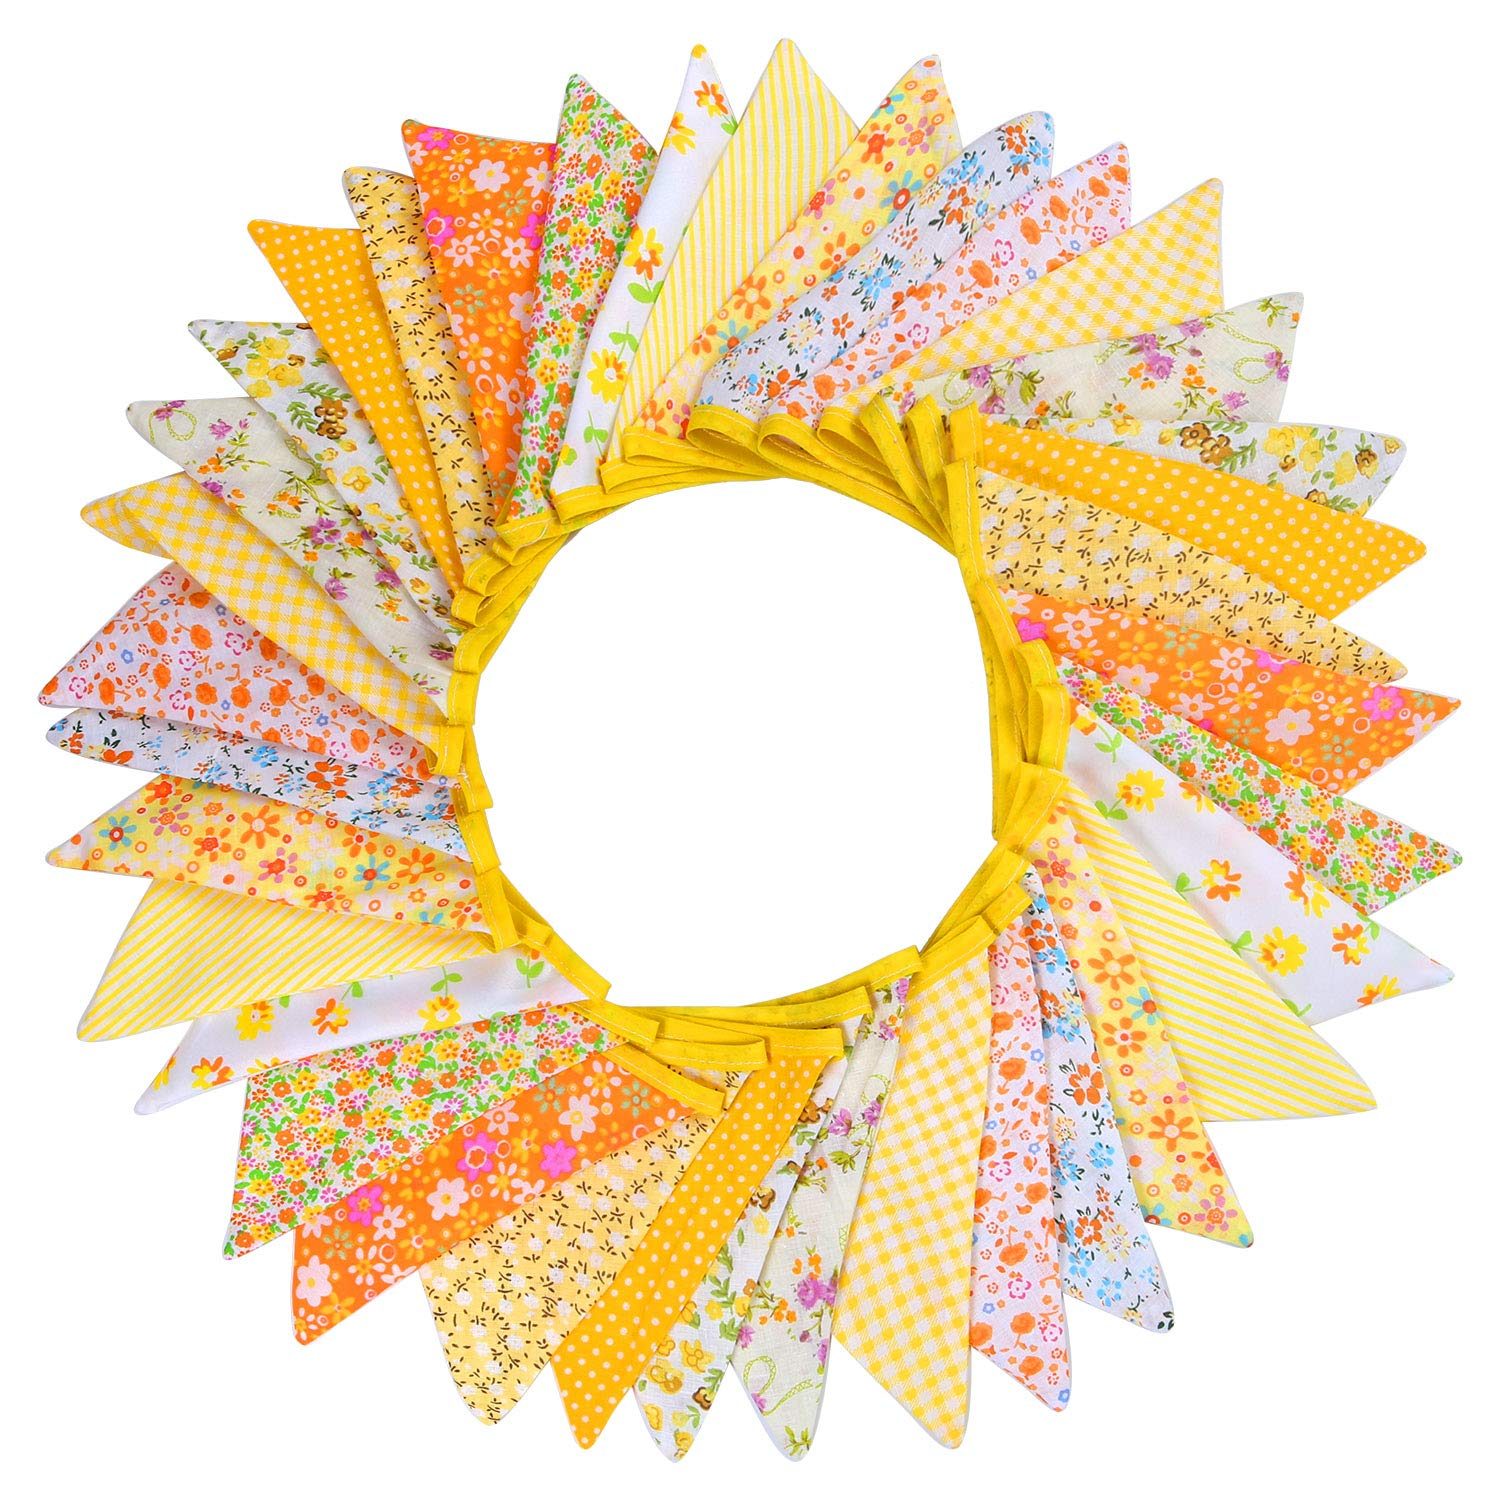 Tupa 36 Pieces Fabric Bunting Banner 36 Feet Multicolor Triangle Flag Garland Decoration with 12 Color for Wedding Birthday Parties